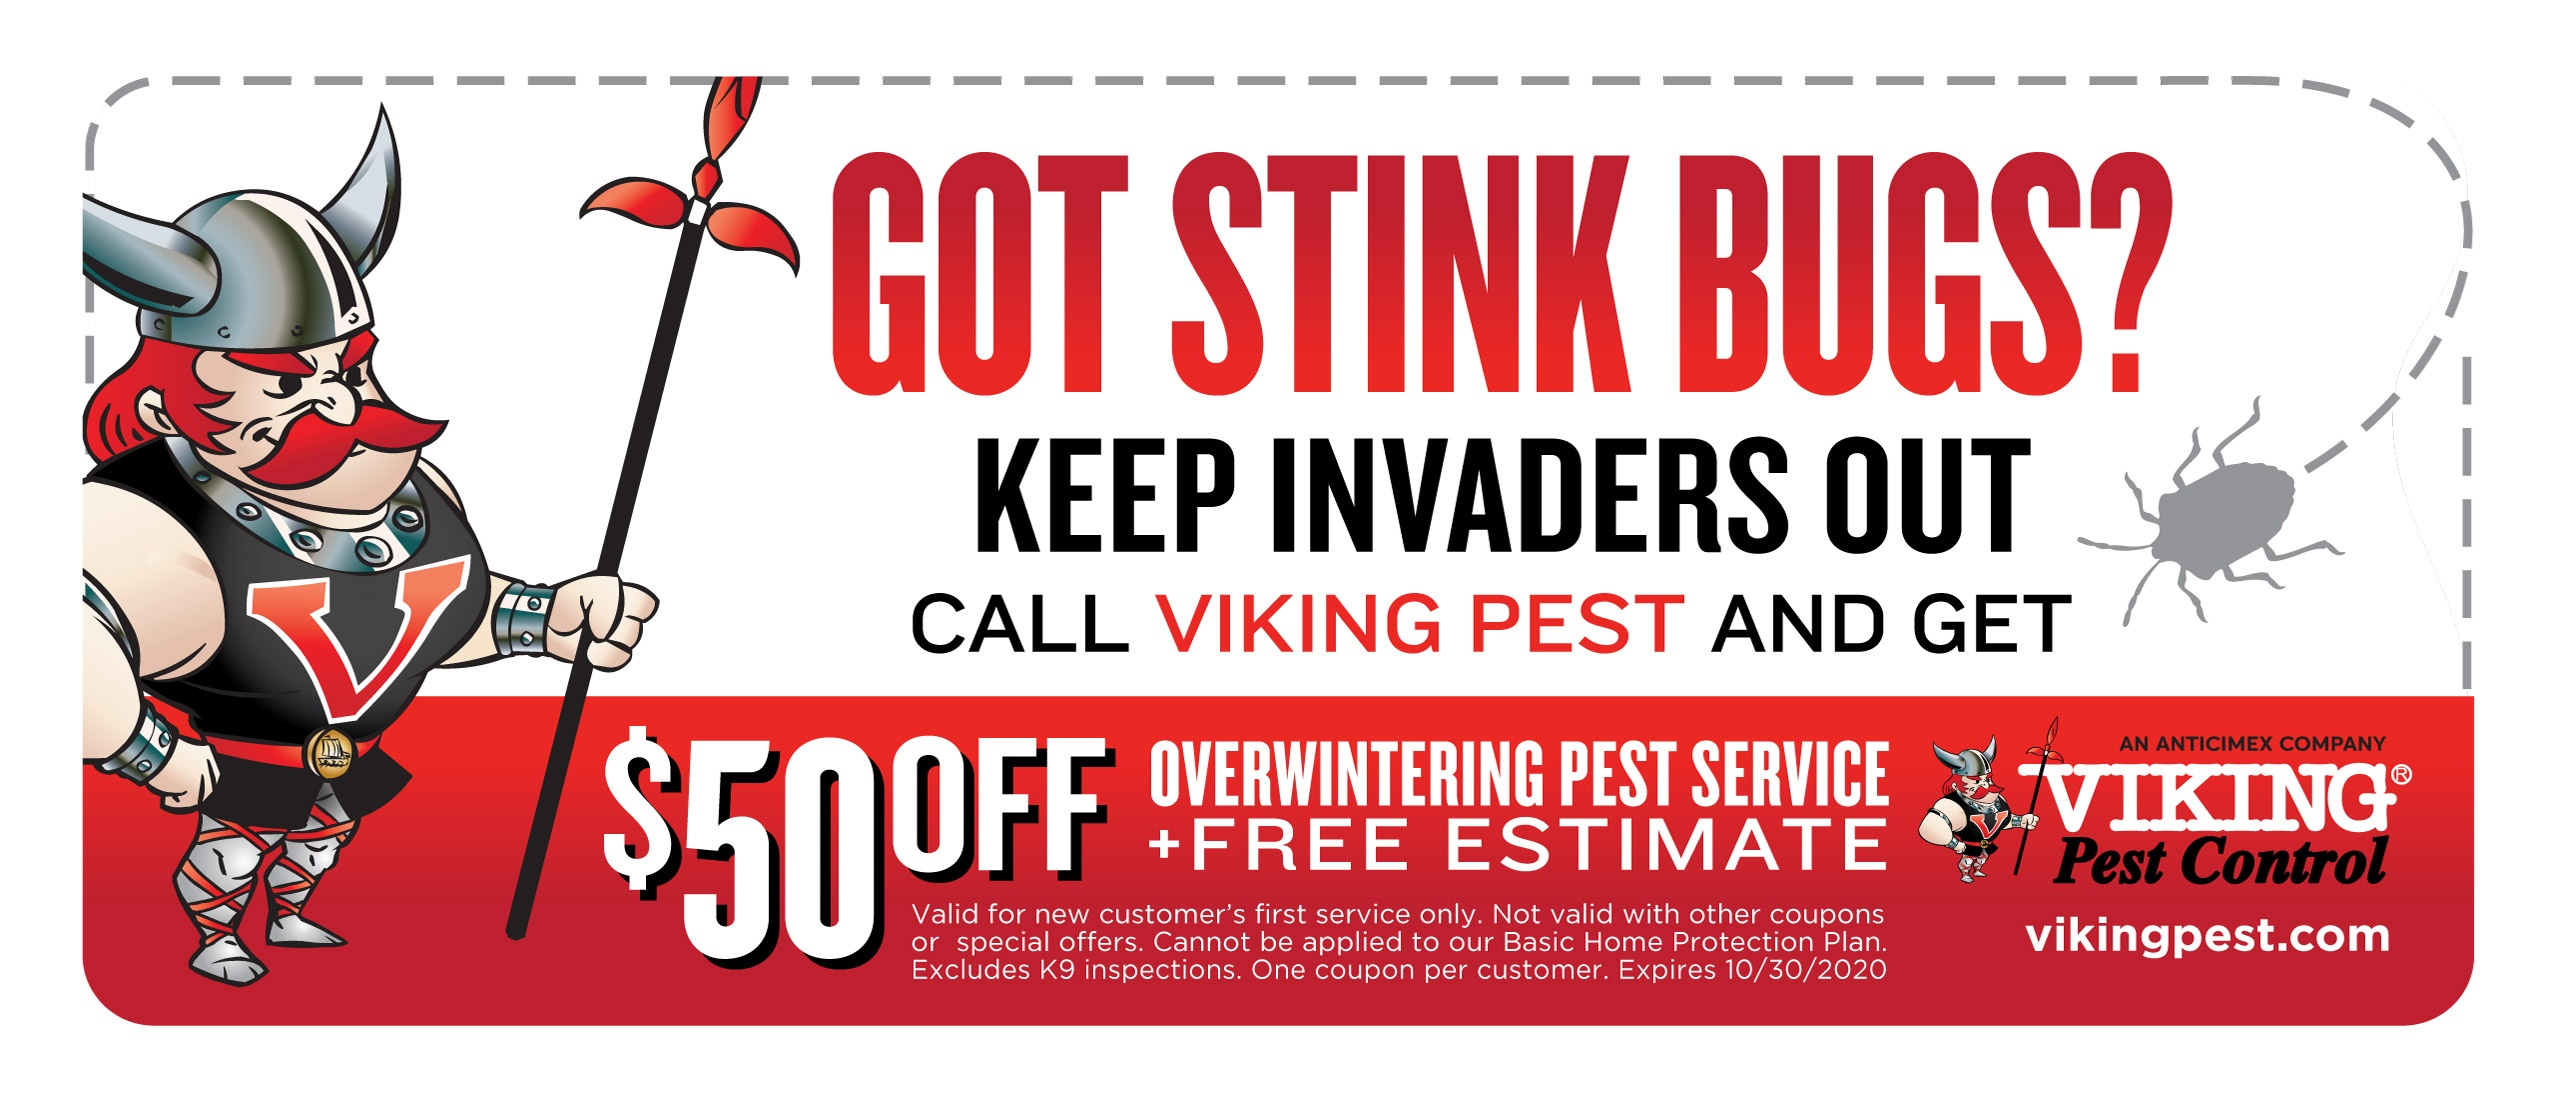 svae-50-dollars-on-stink-bug-pest-control-coupon